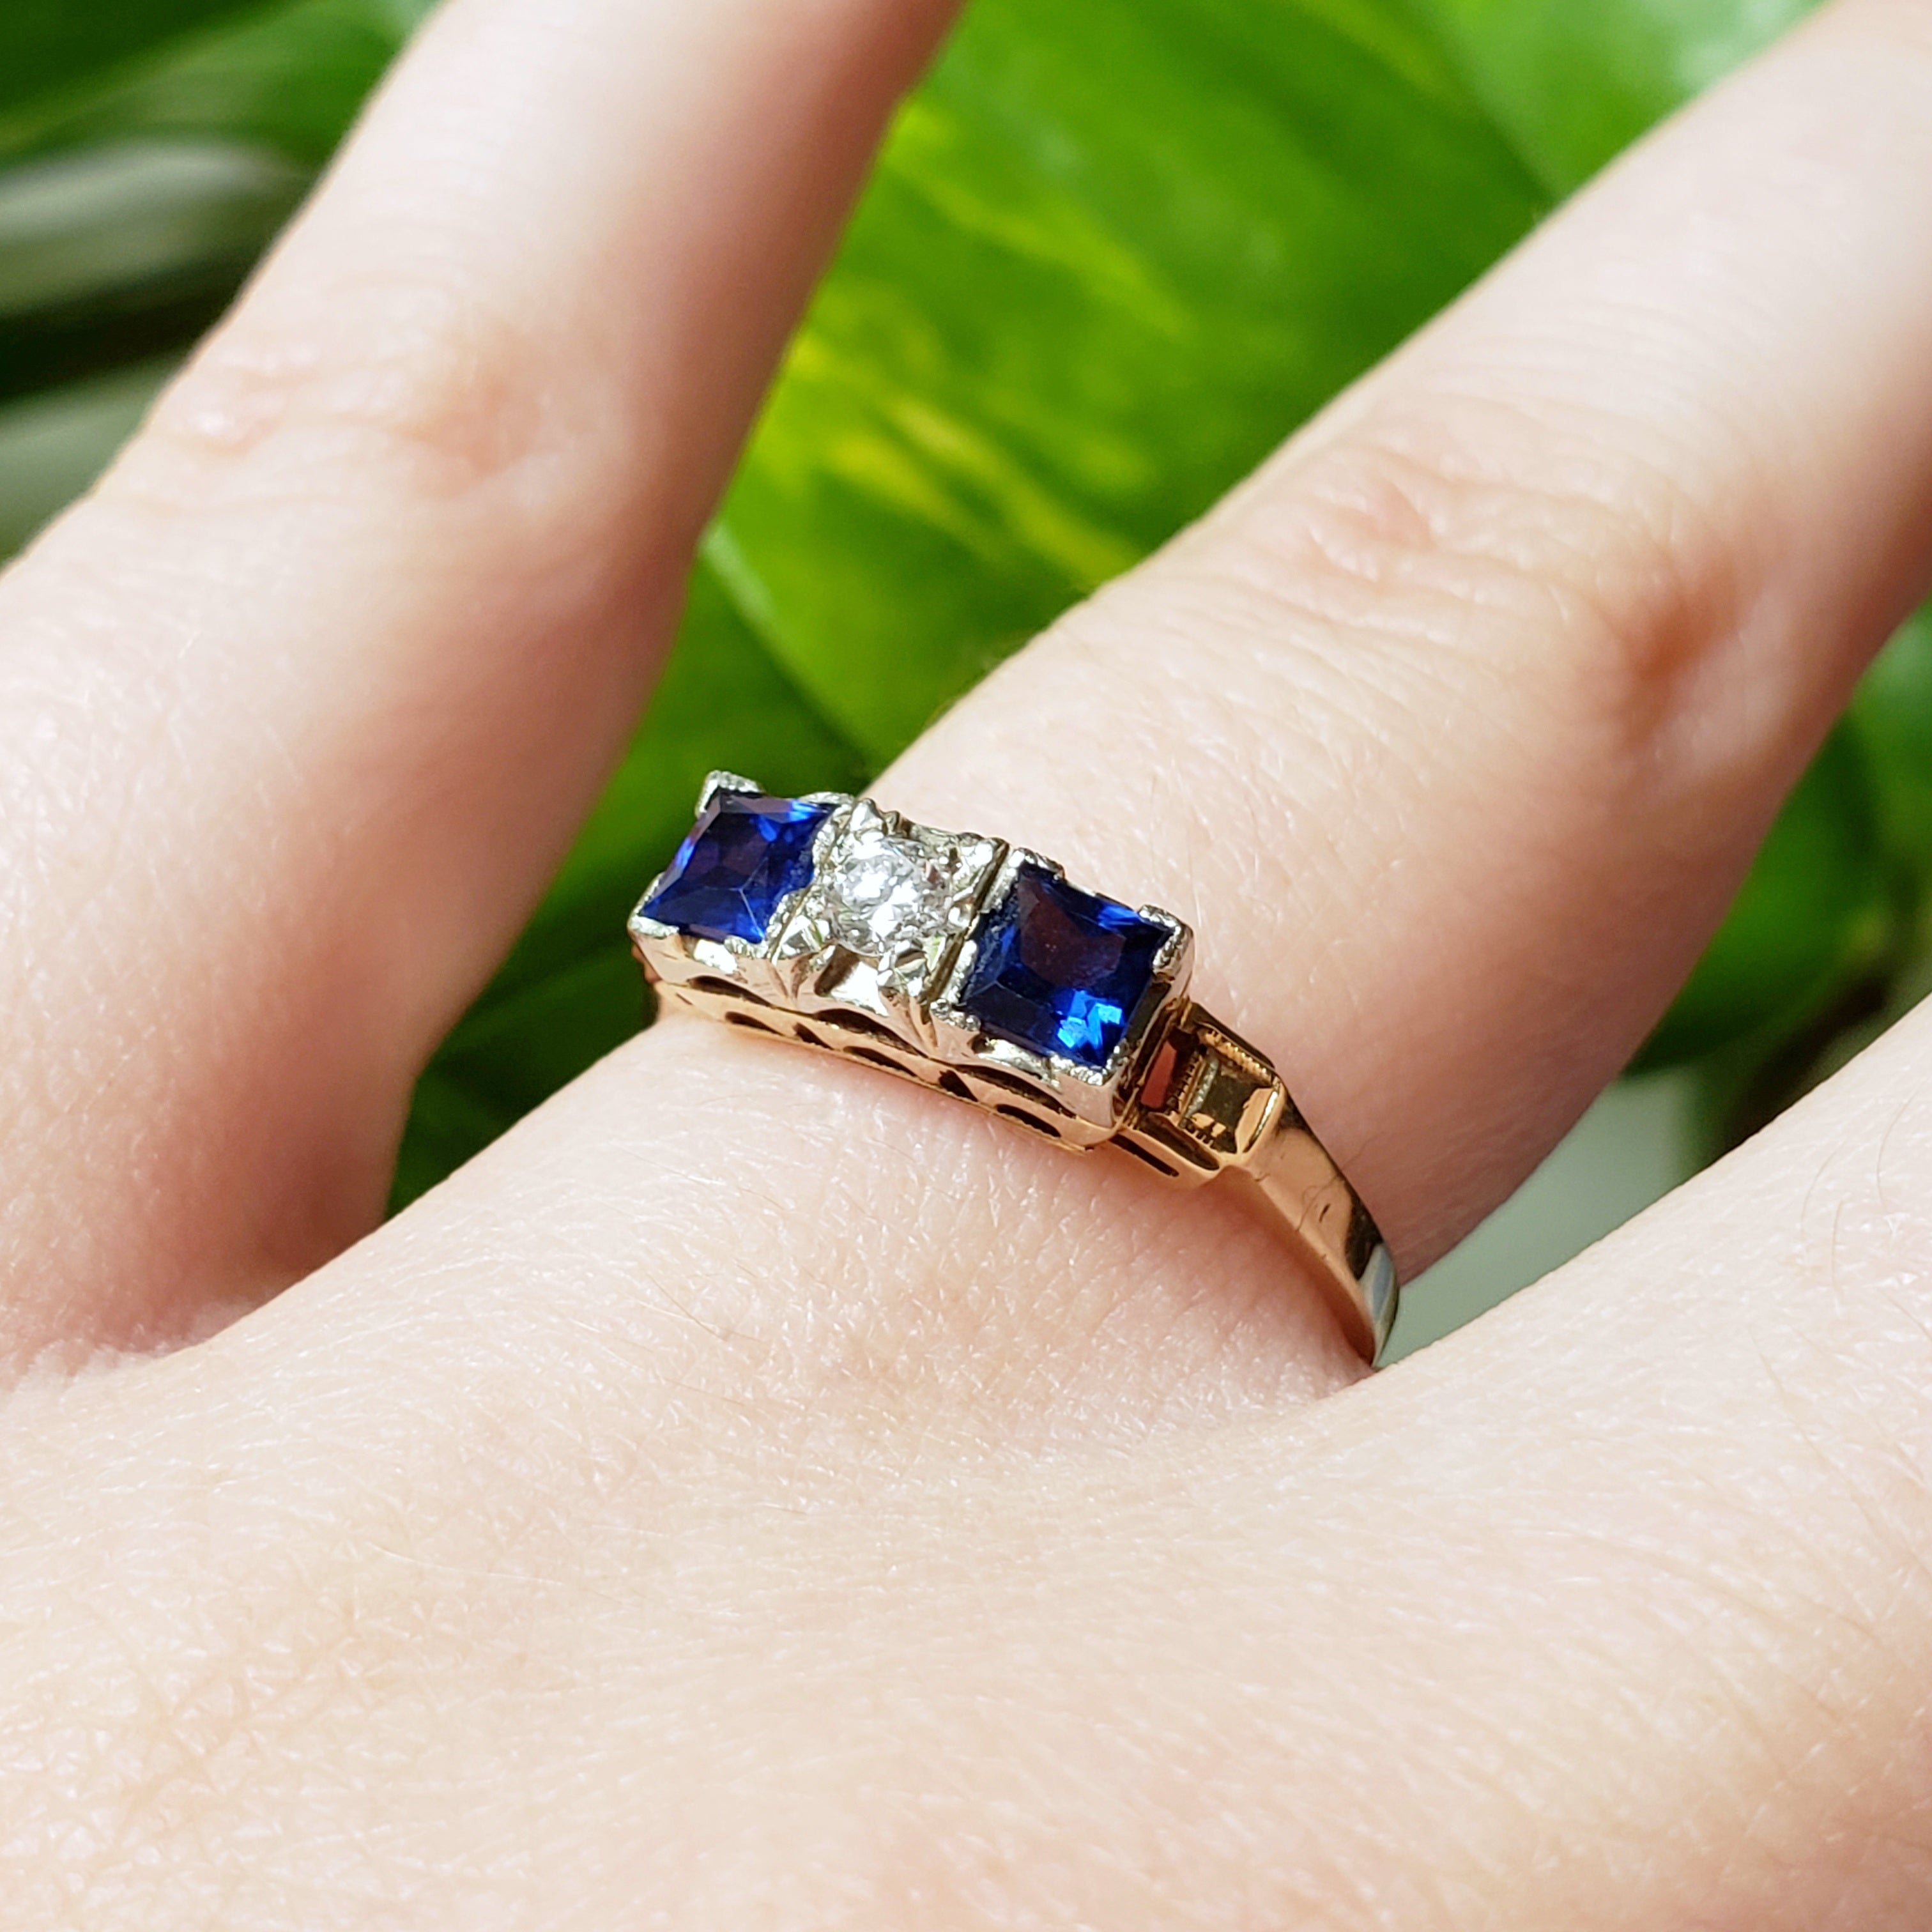 Vintage Blue Sapphire Diamond Engagement Ring | Era Design Vancouver Canada